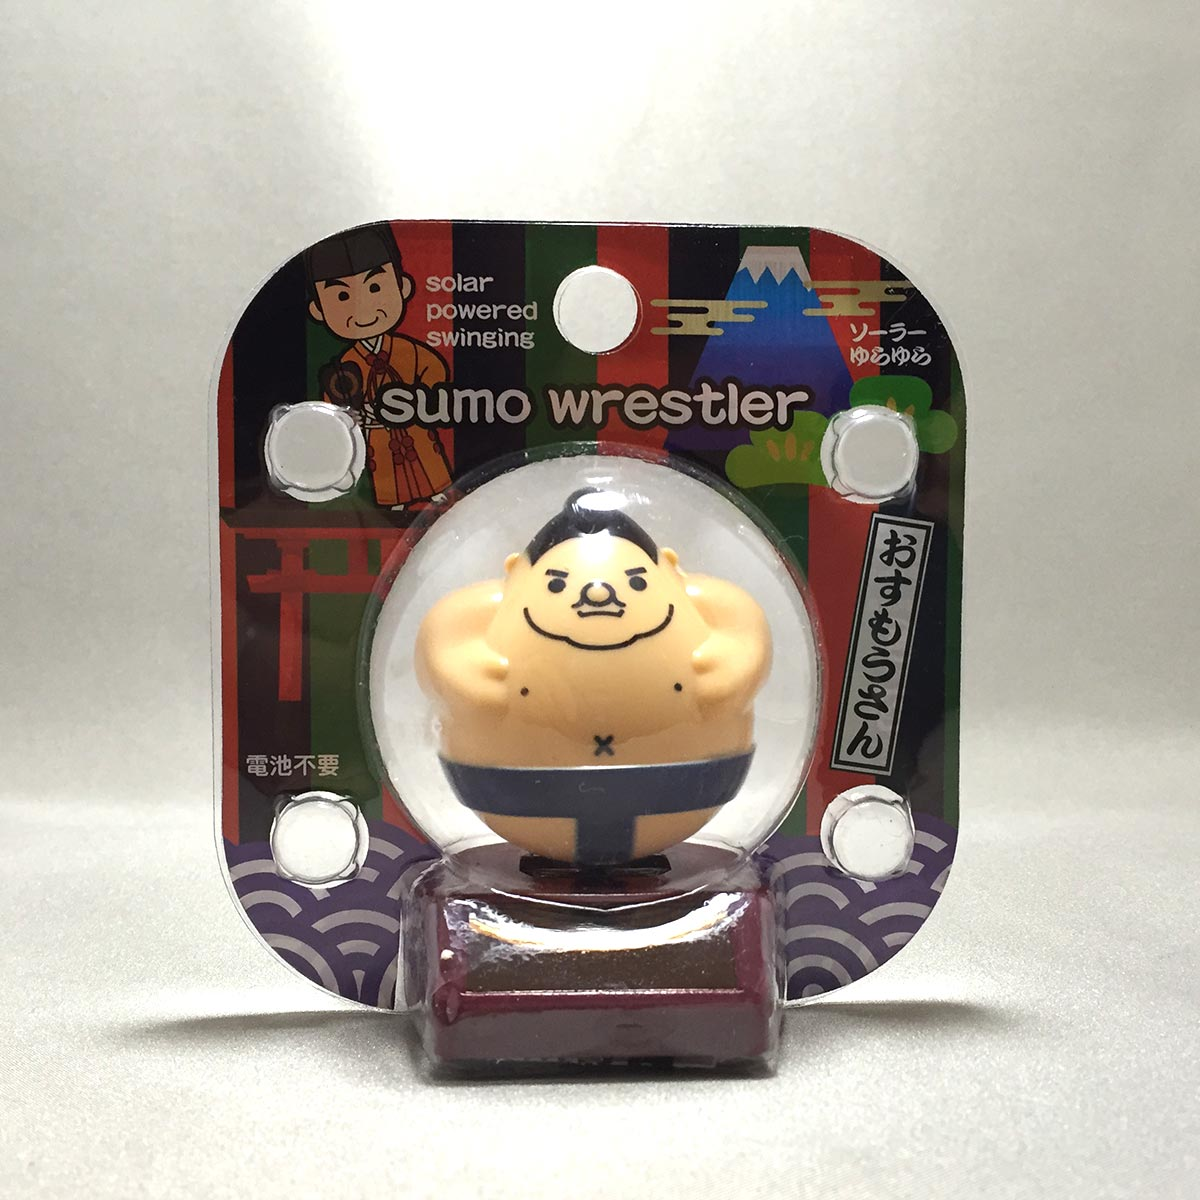 Solar Powered Swinging Sumo Wrestler - front packaging